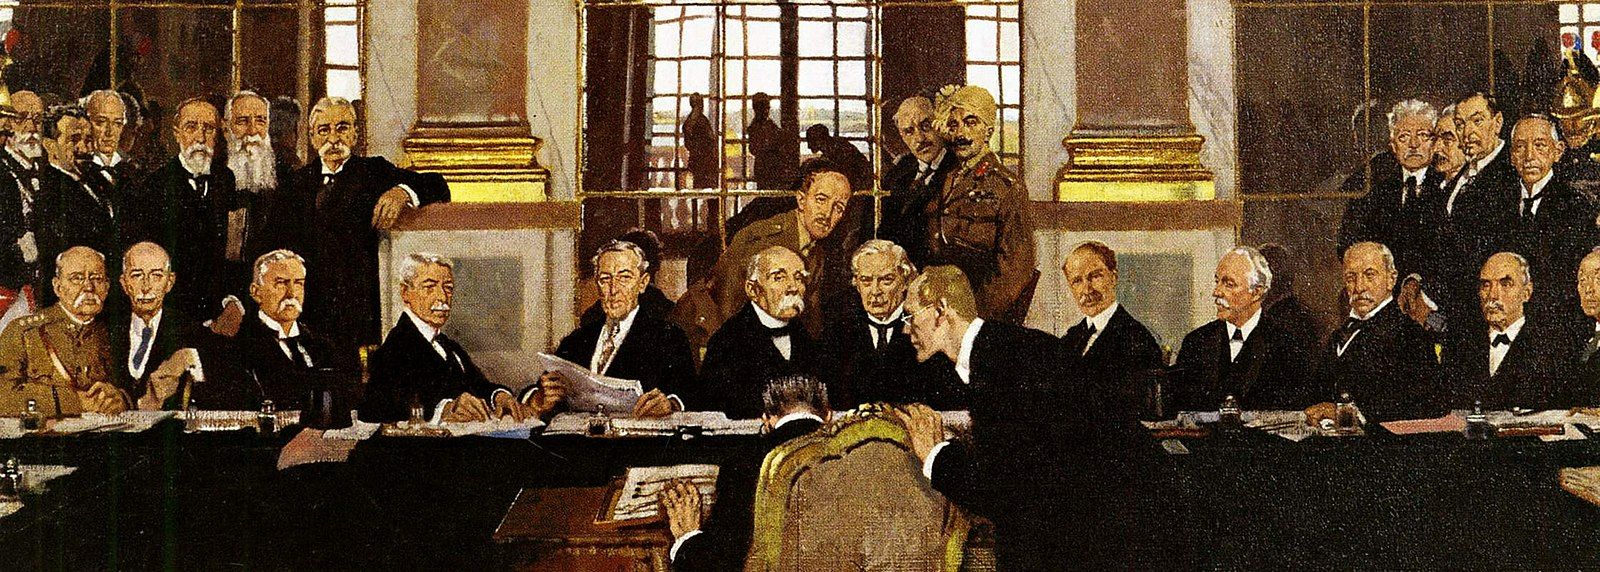 an analysis of the reasons for the failure of the versailles peace treaty